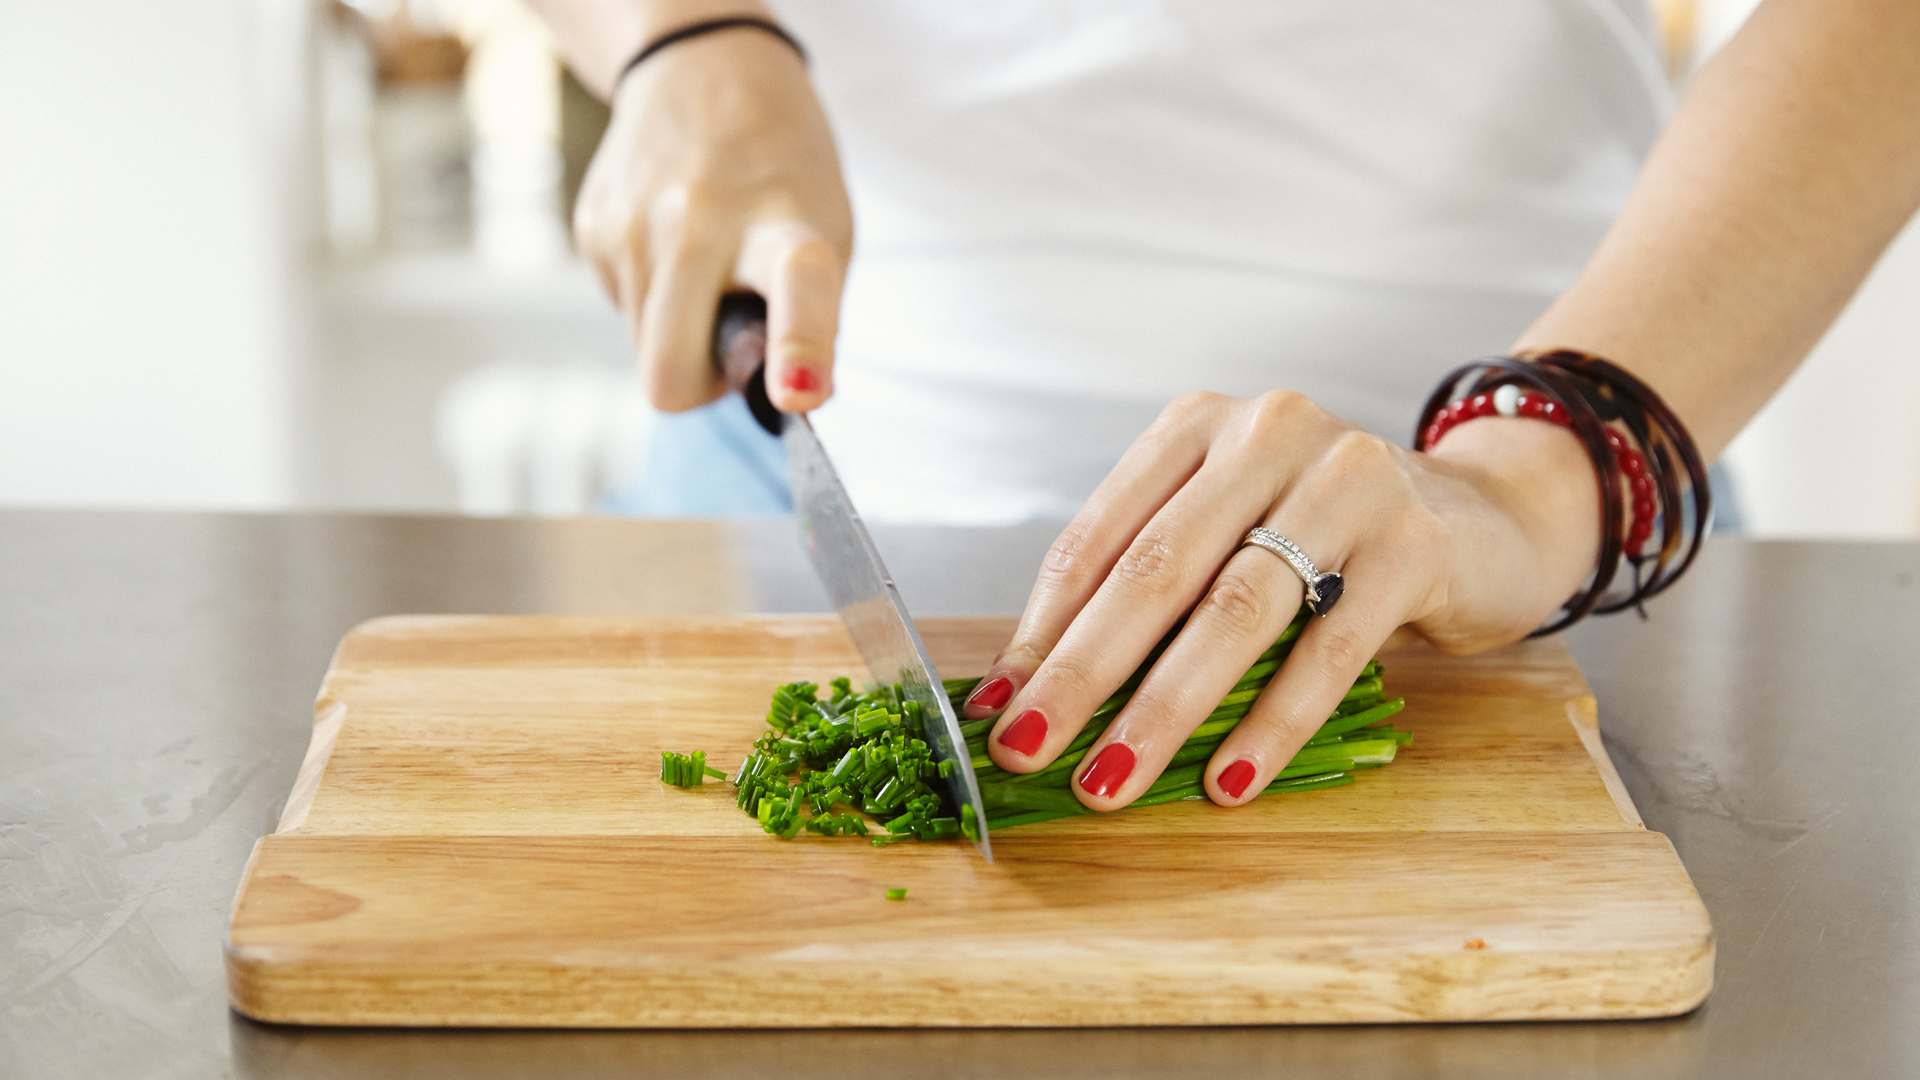 catherine-cuello-from-greenhopping-chopping-chives-for-her-sweet-potato-kale-and-chives-recipe-foodadit